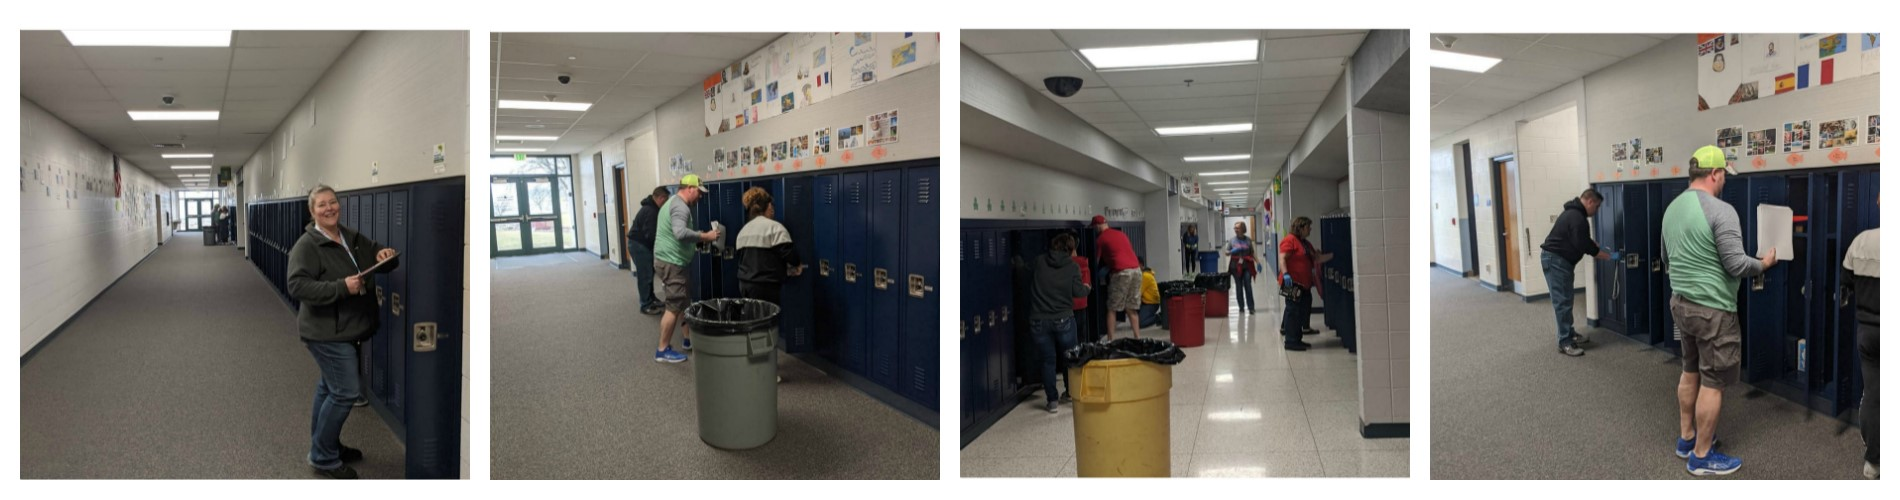 Very thankful for the terrific volunteers who came in today to clean food and loose paper from lockers! Many hands made this quick work!